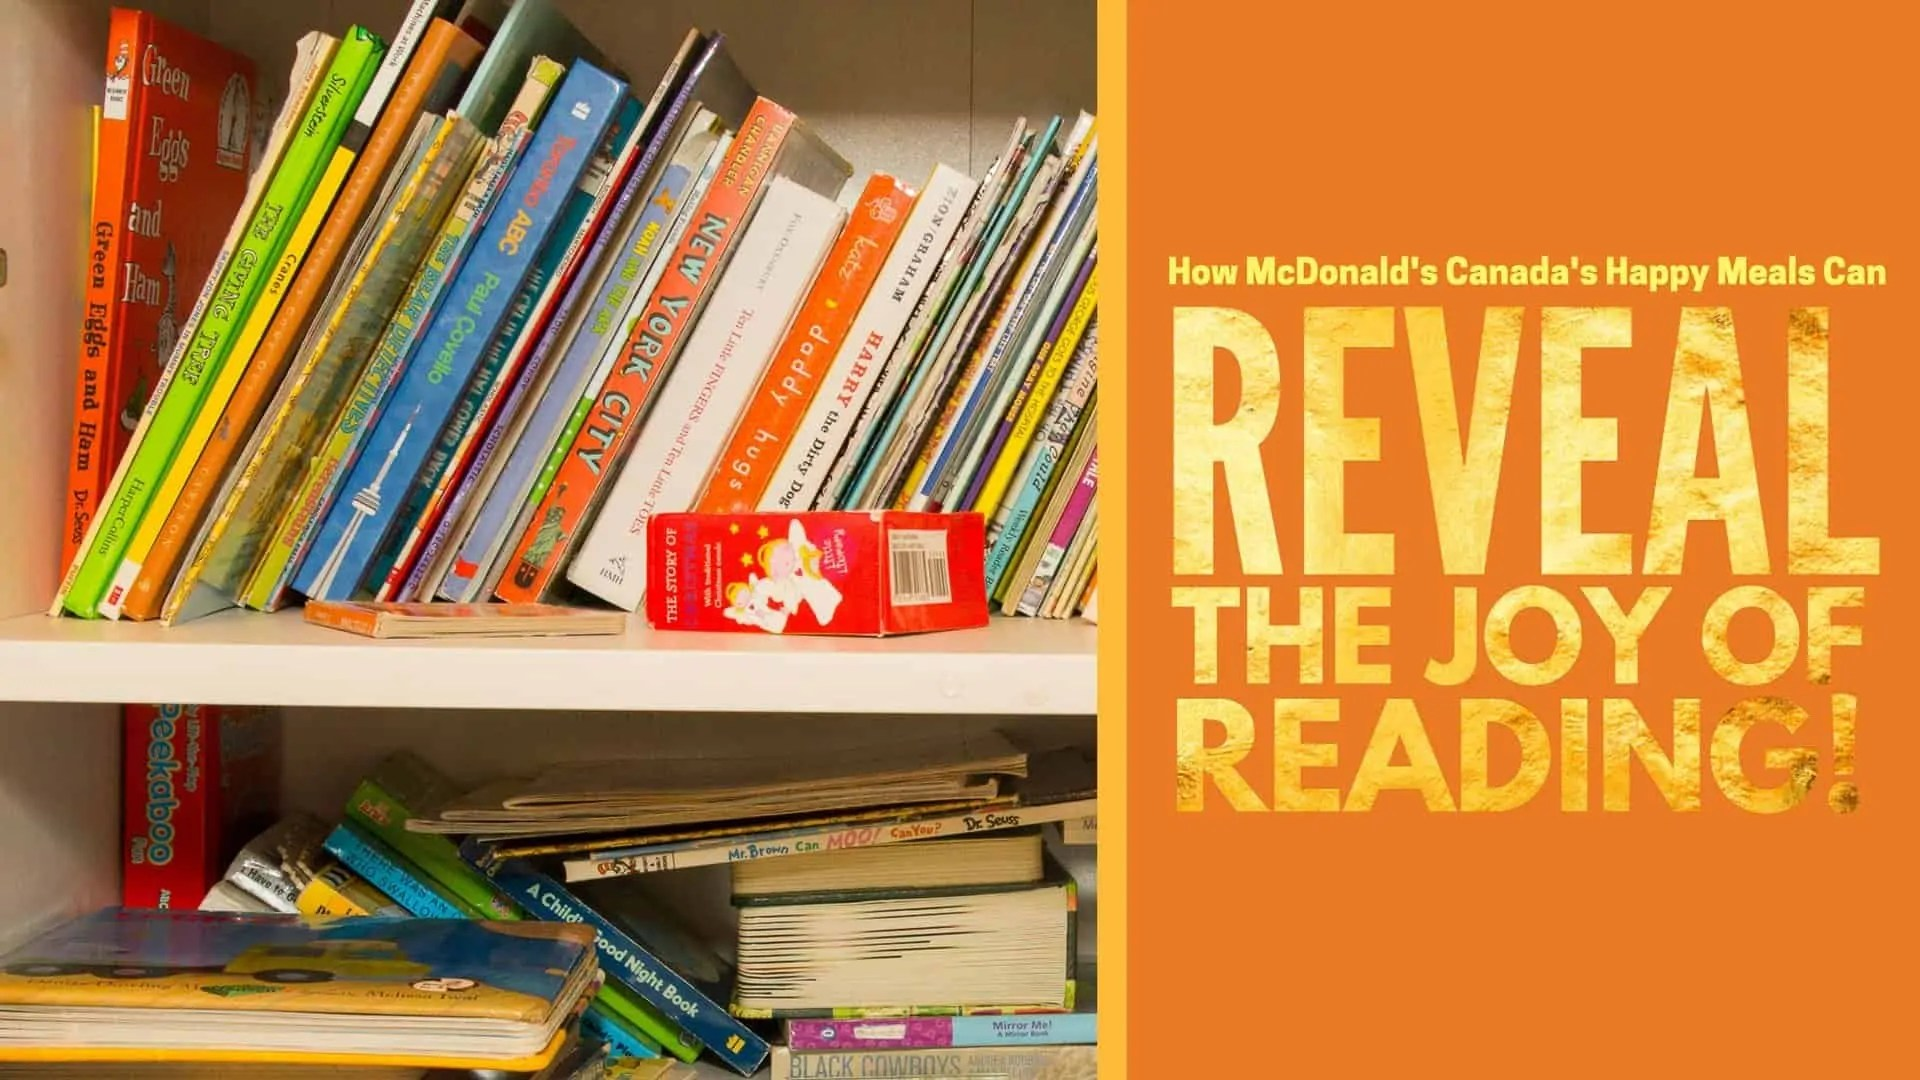 How McDonald's Canada's Happy Meals Can Reveal the Joy of Reading! (Featured Image)